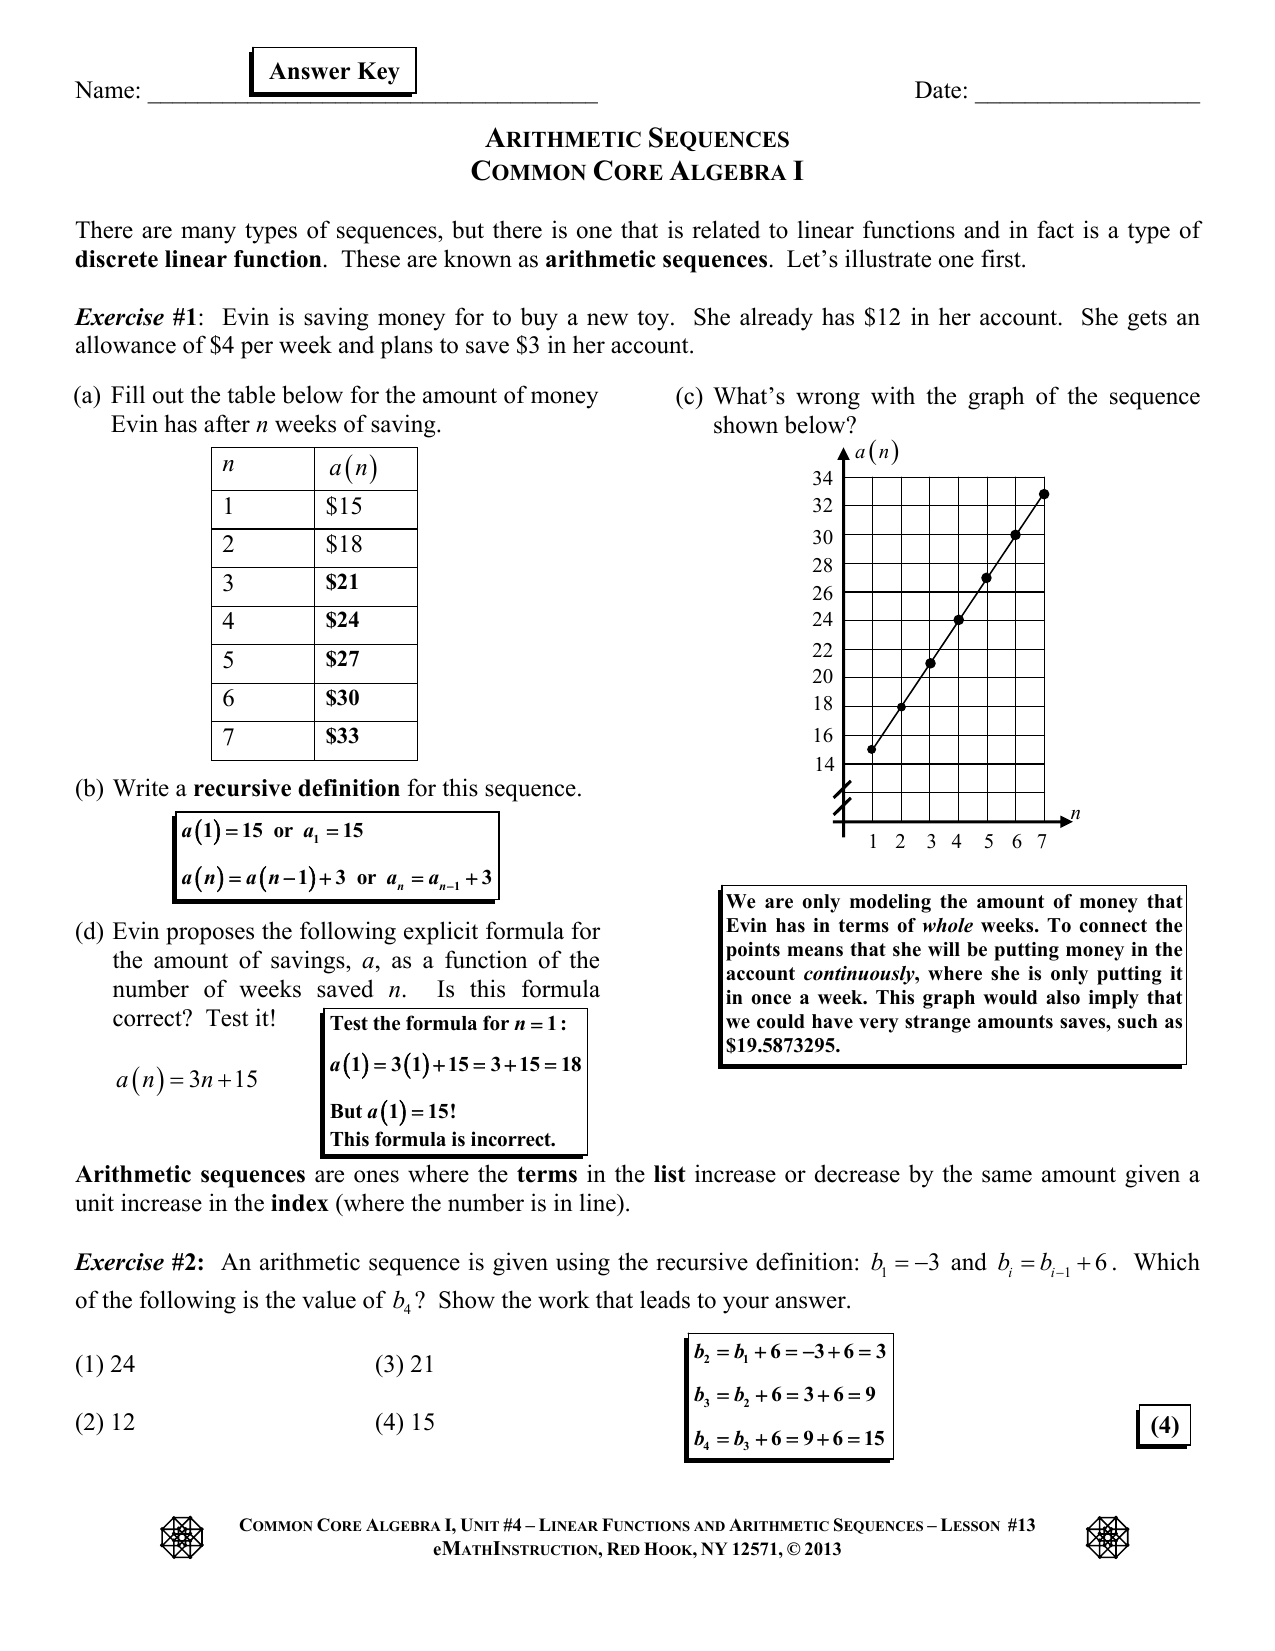 Emathinstruction Common Core Algebra 1 Homework Answers